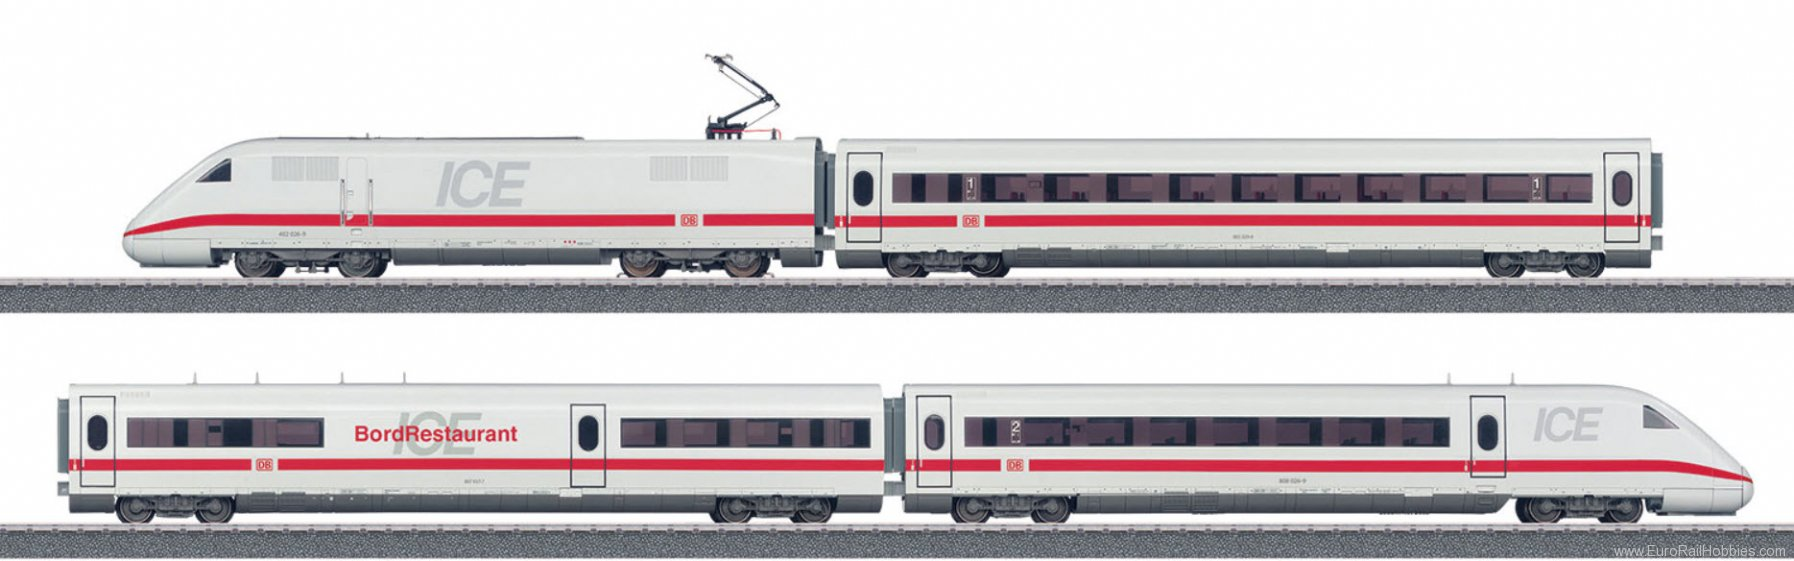 Marklin 36712 ICE 2 High-Speed Train (Marklin Start Up)